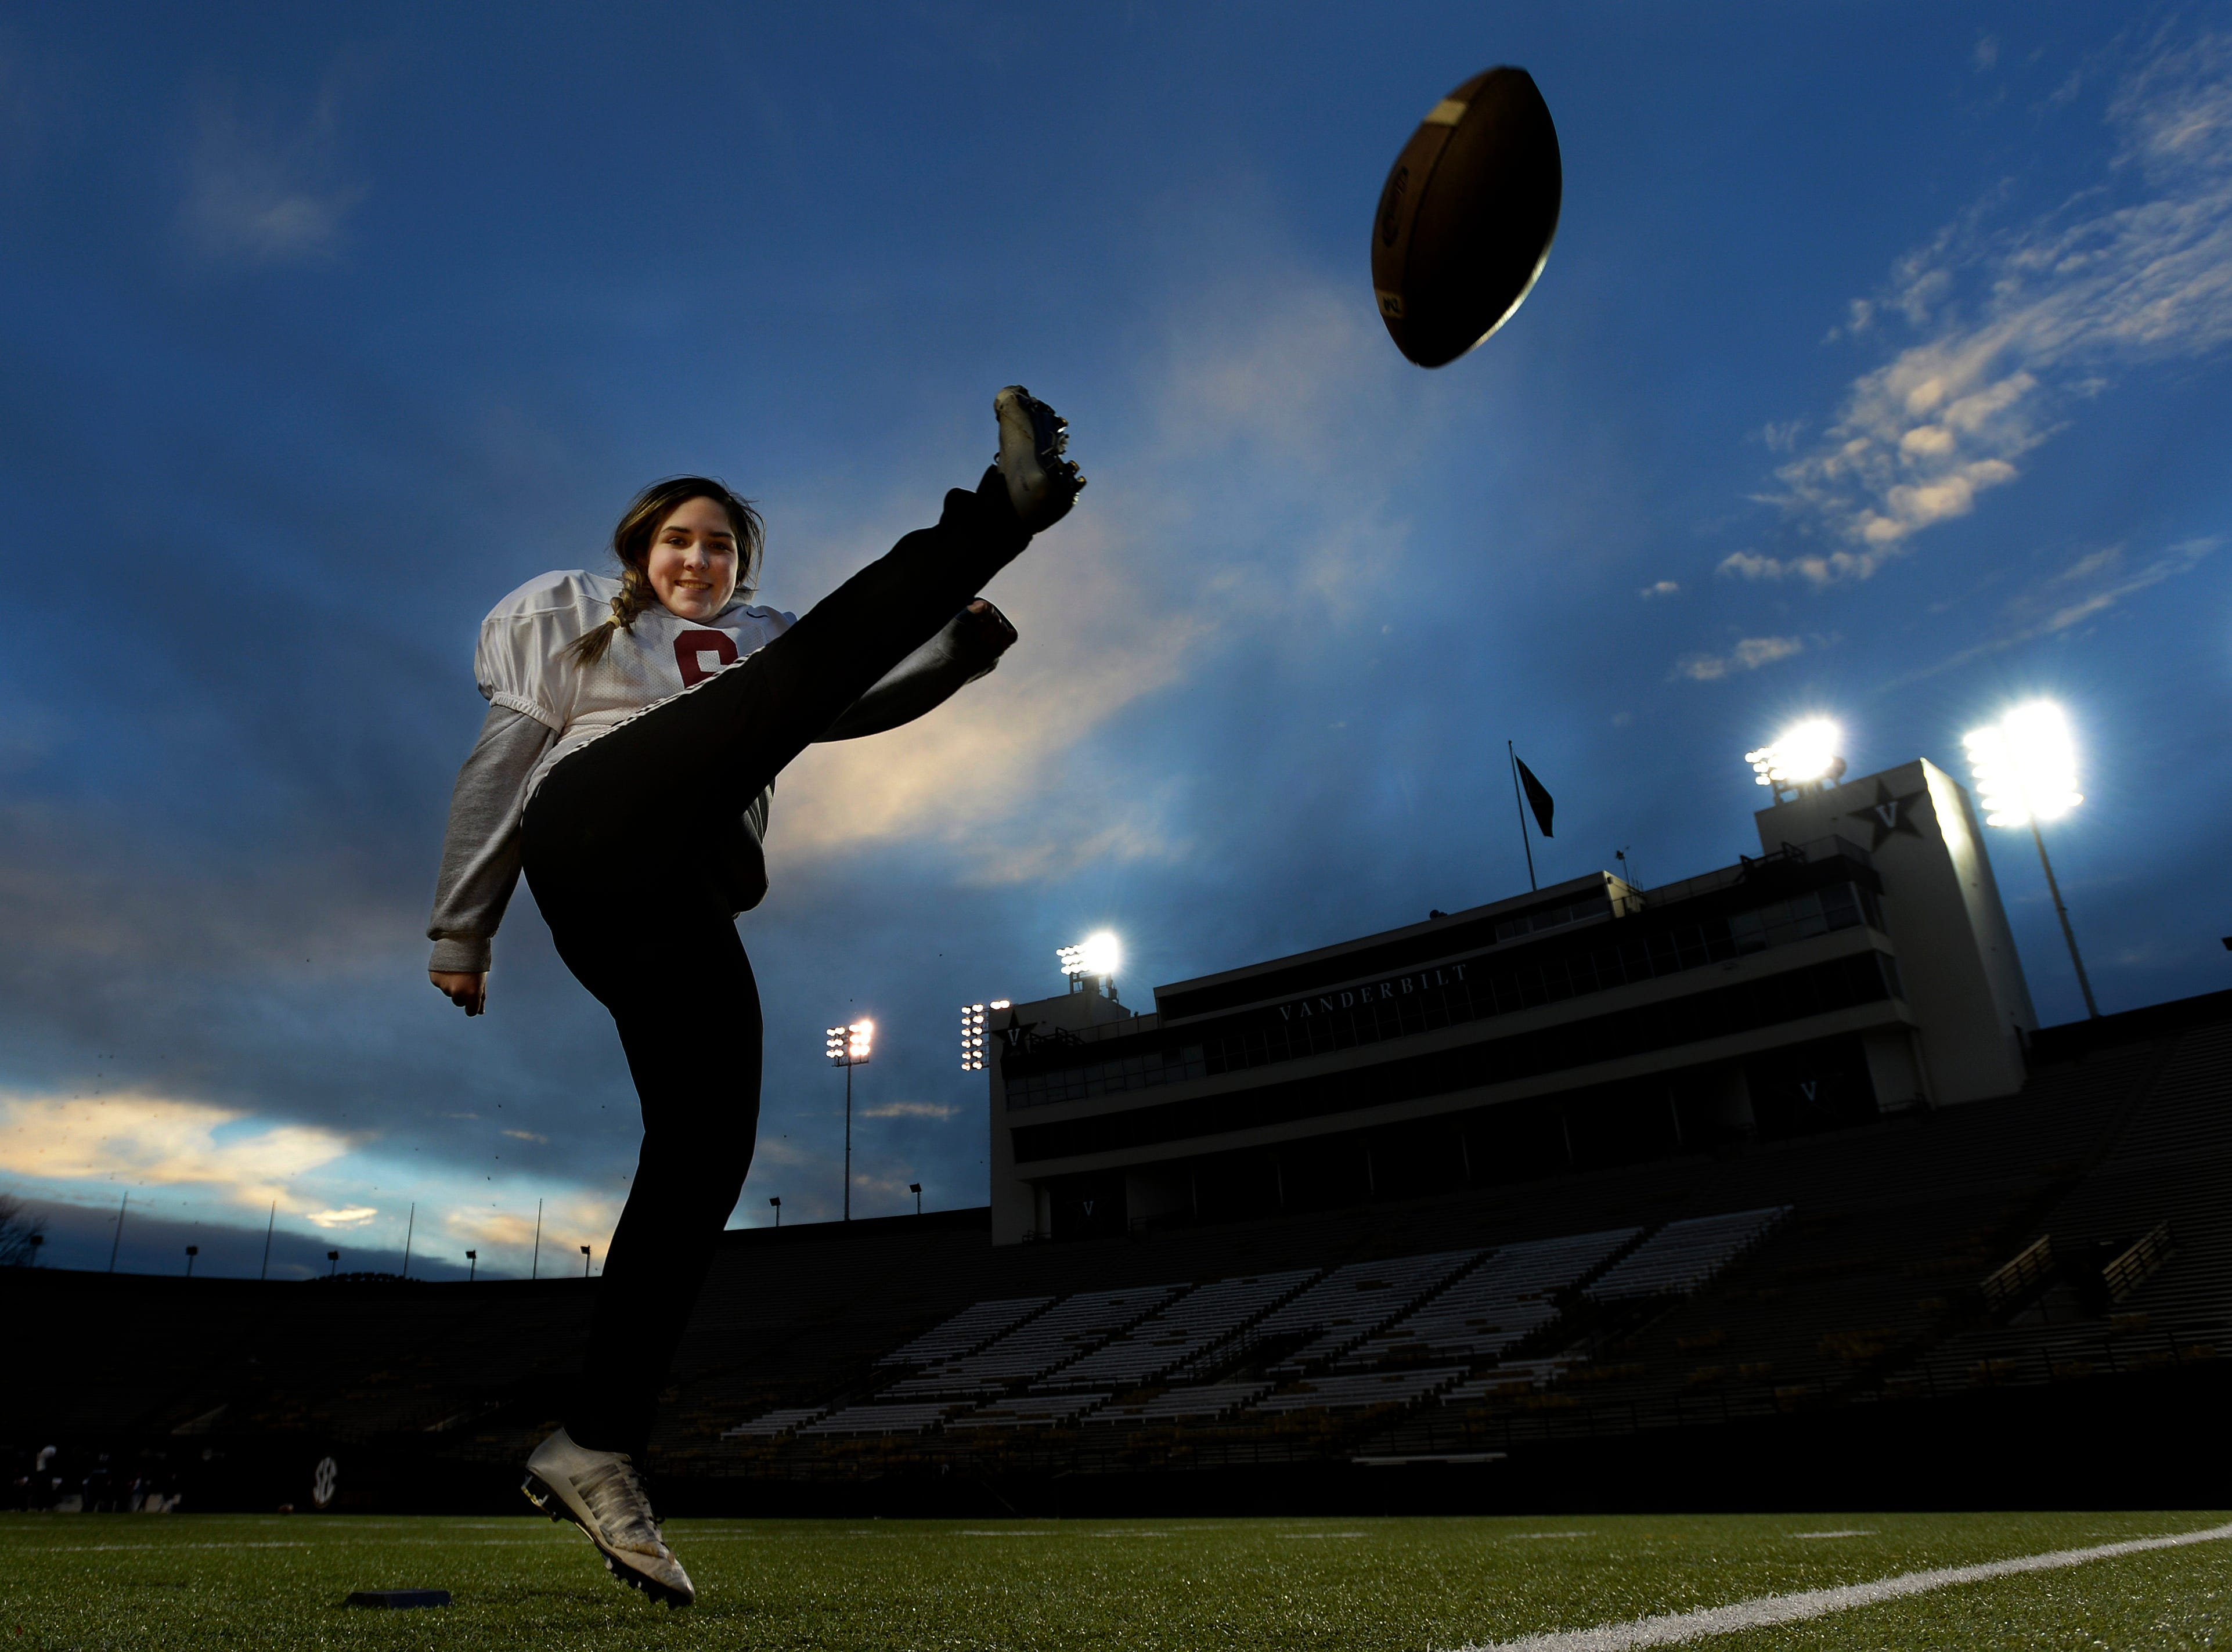 Davidson Academy kicker Lauren Brooks works on her technique kicking field goals during practice at the Vanderbilt Stadium on Wednesday, Nov. 28, 2018, in Nashville, Tenn. Brooks could be the first female kicker to score a point in a TSSAA state championship game either by kicking a field goal or PAT.